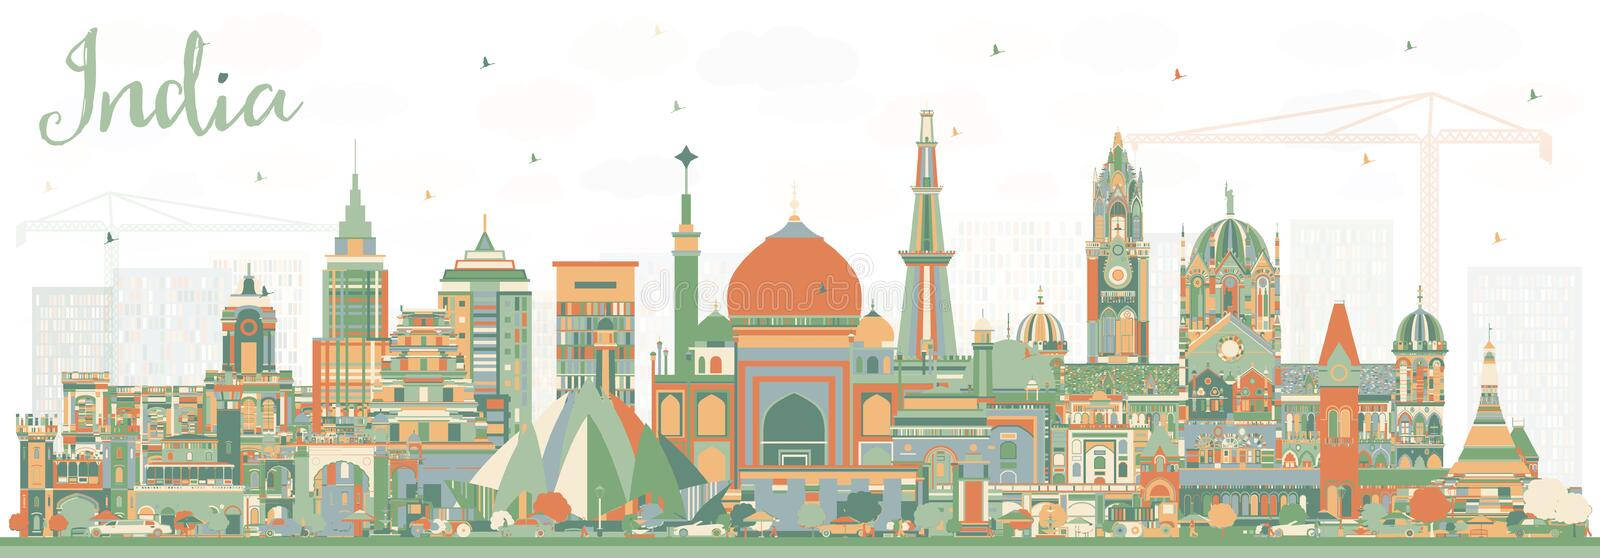 India City Skyline with Color Buildings. Delhi. Mumbai, Bangalore, Chennai. Vector Illustration. Travel and Tourism Concept with Historic Architecture. India royalty free illustration